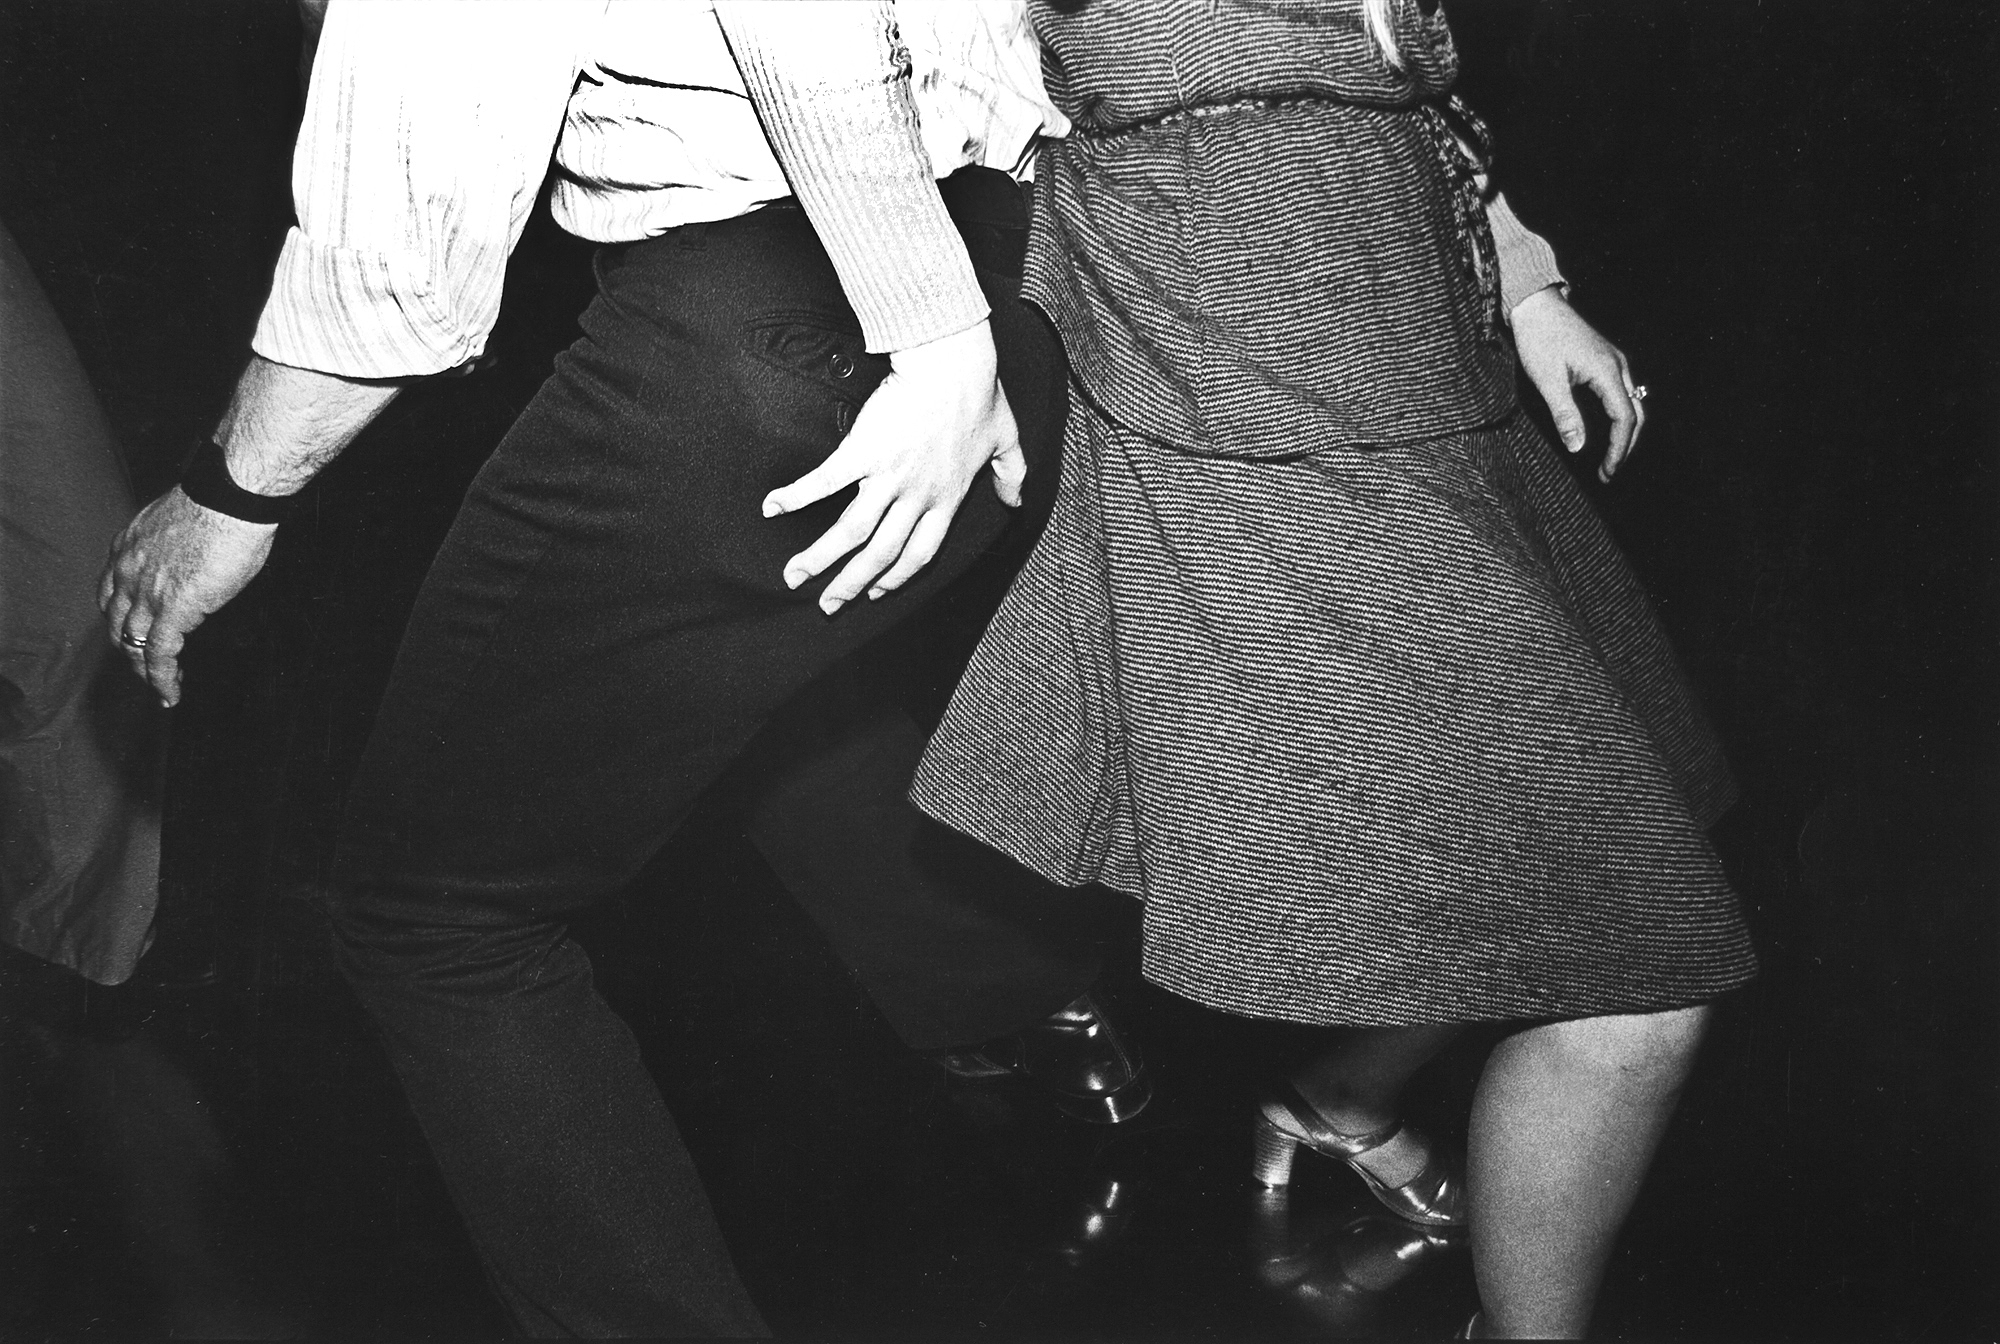 Tony_Ward_photography_early_work_Night_Fever_portfolio_1970's_erotic_dancing_couples